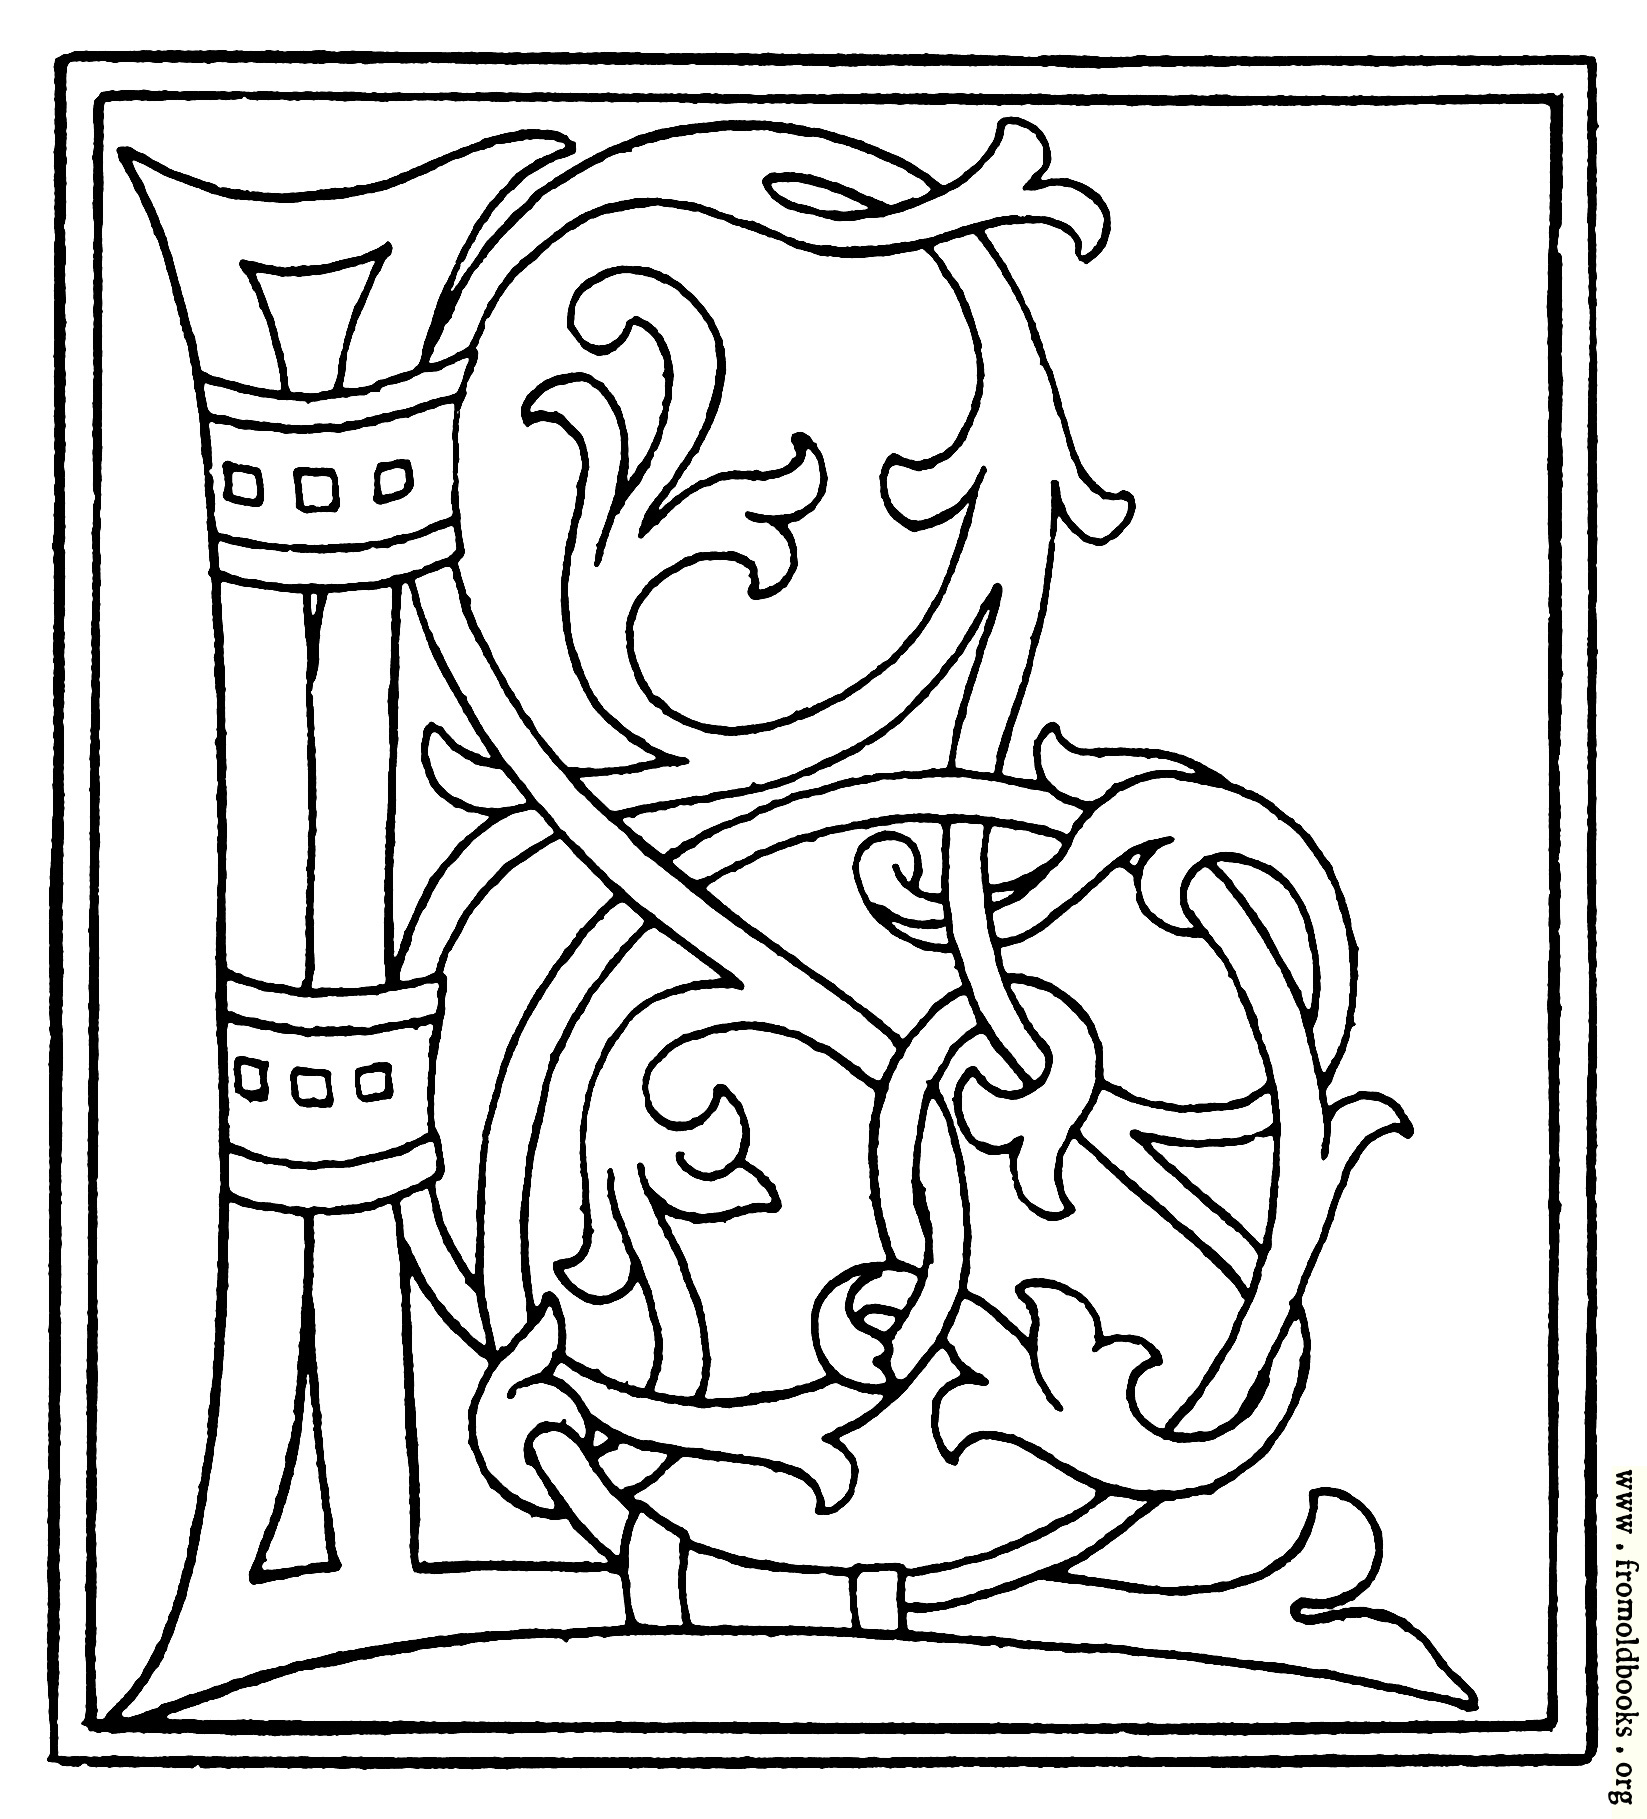 Clipart Initial Letter L From Late 15th Century Printed